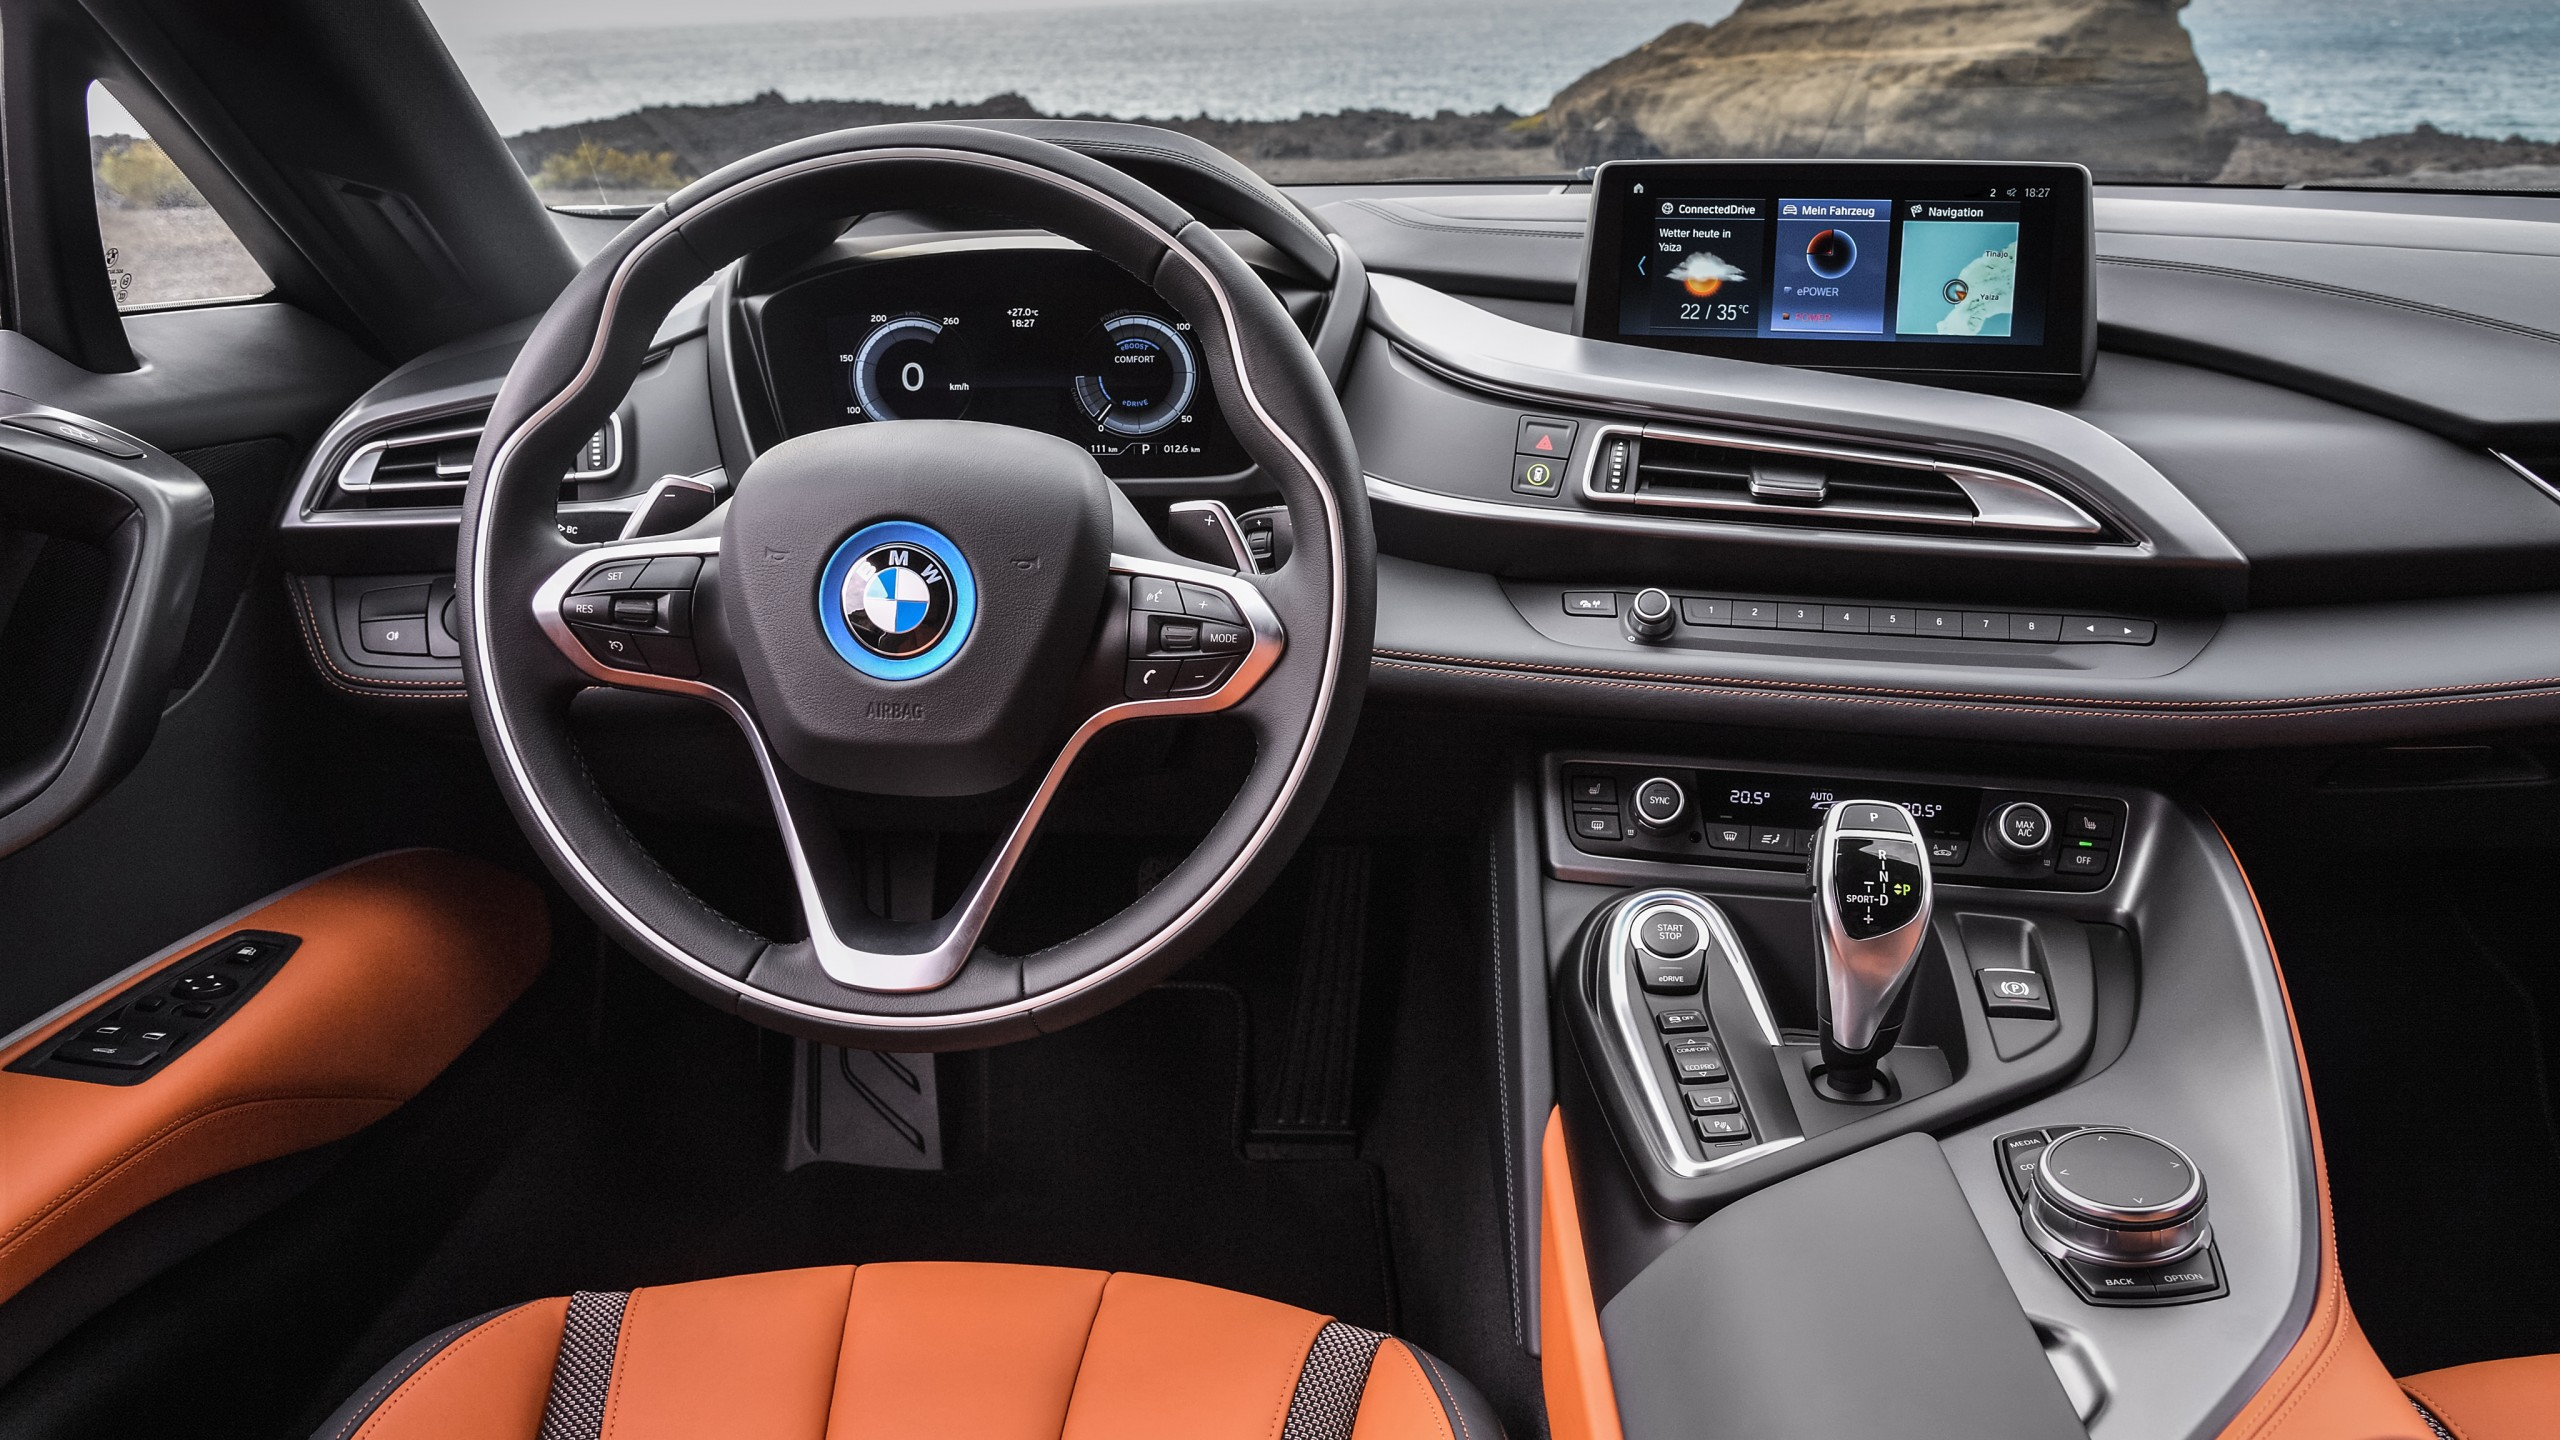 2018 Bmw I8 Roadster 4k Interior Wallpaper Hd Car Wallpapers